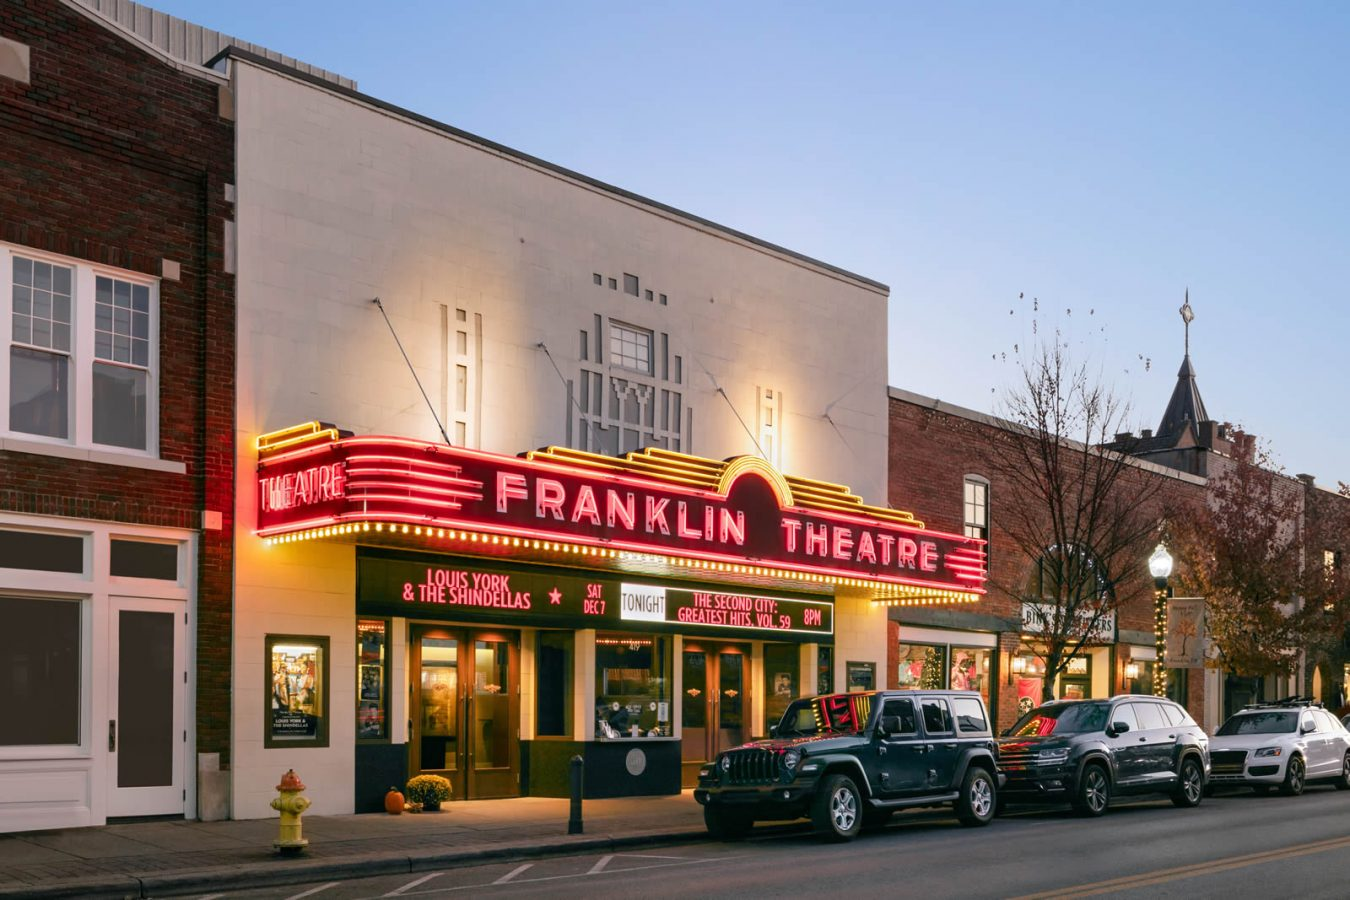 The Franklin Theatre